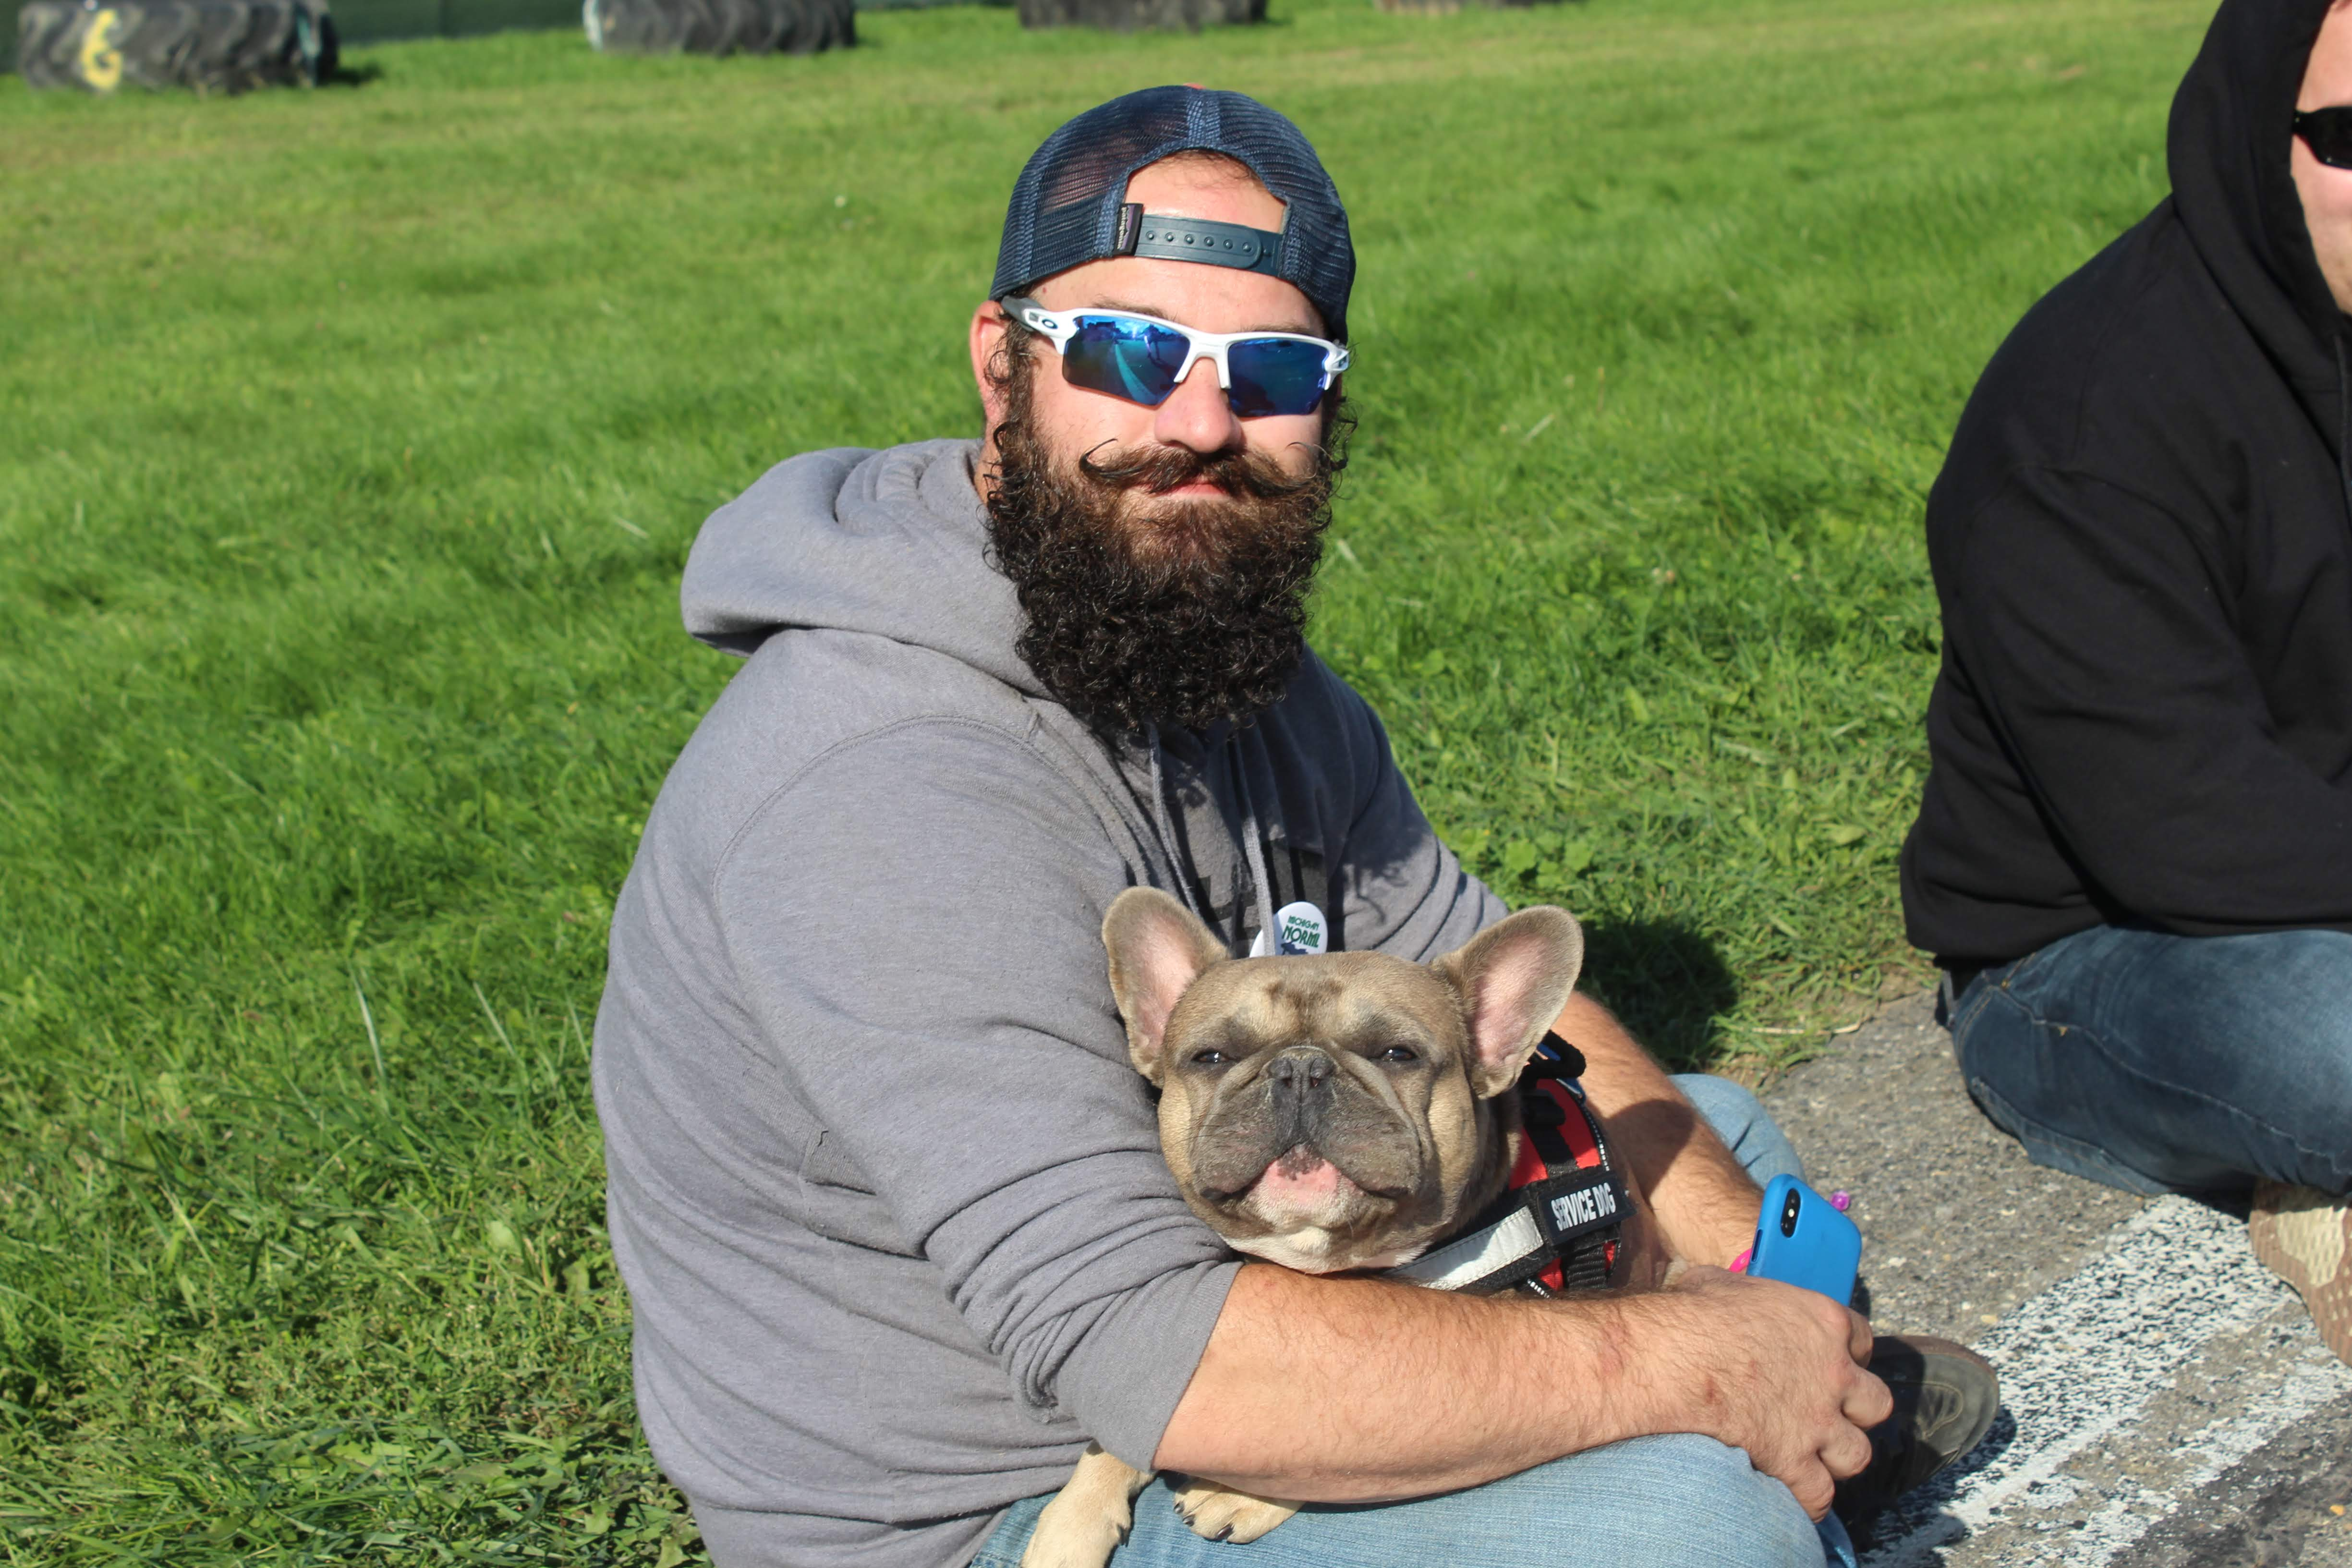 Photo of Cannabis Cup attendee Levi with his French Bulldog, Kermit